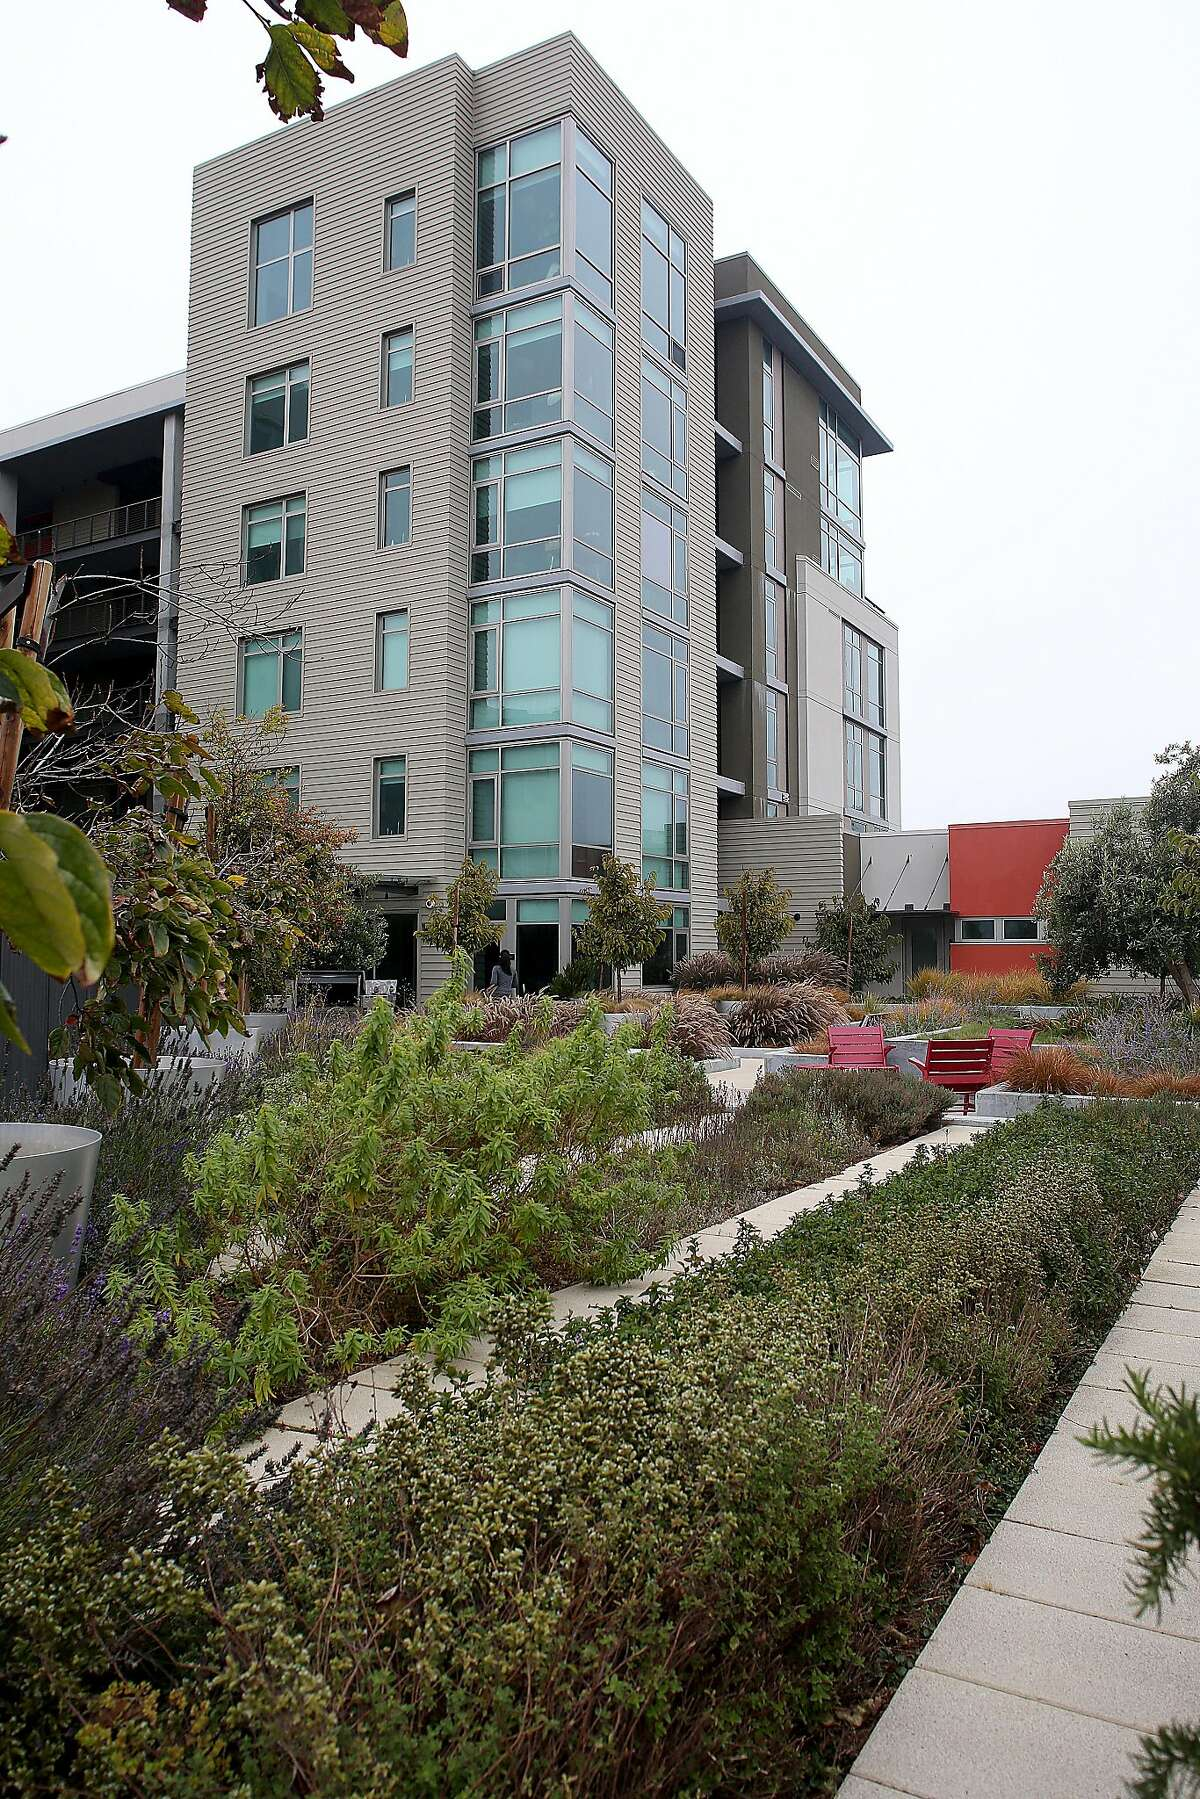 A view of the herb rooftop garden with oregano in the foreground at 38 Dolores St. on Thursday, September 1, 2016, in San Francisco, Calif.